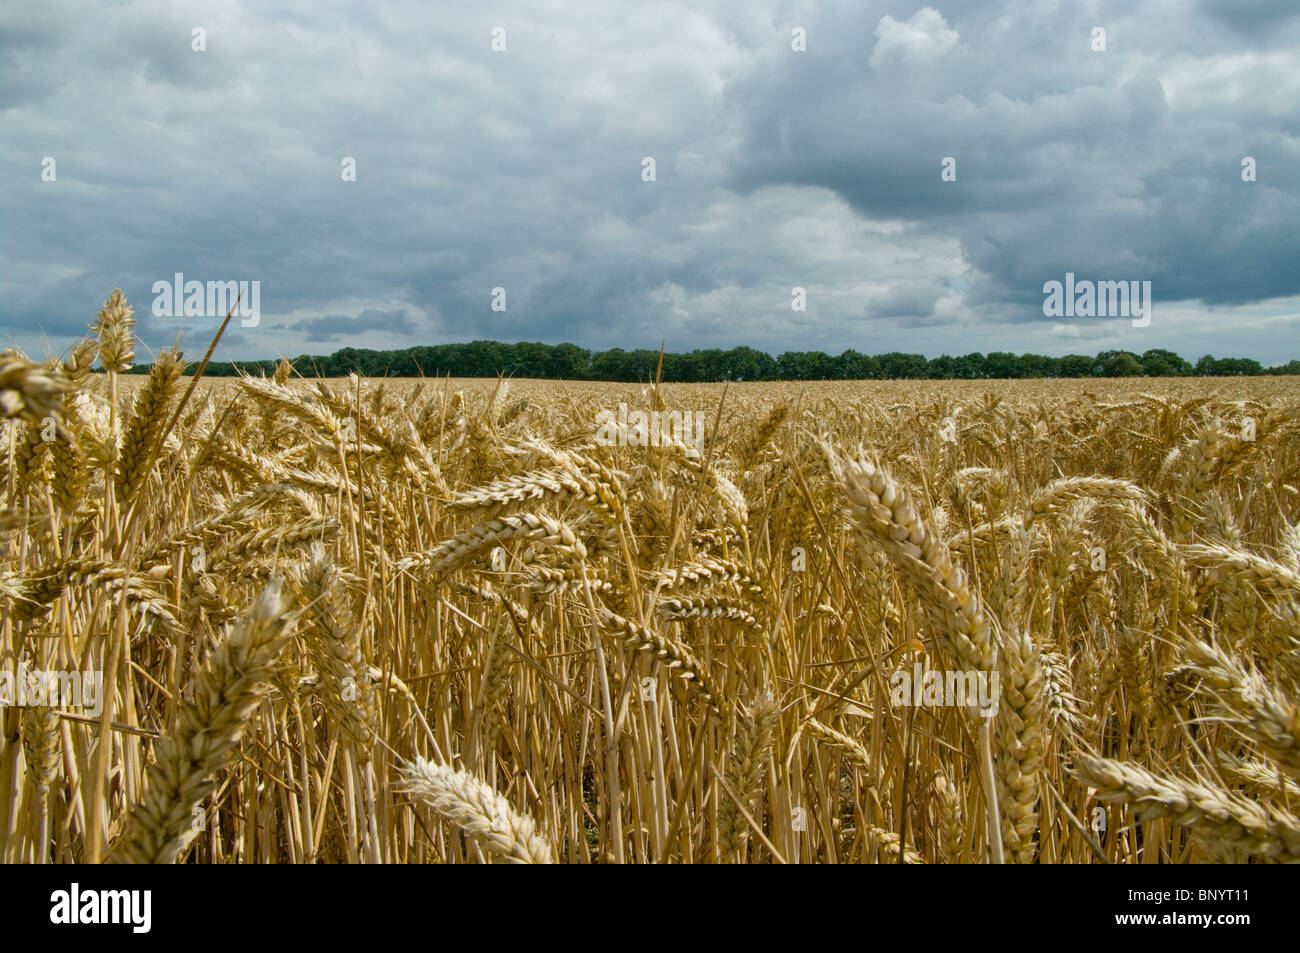 WHEAT EARS OR SPIKES - Stock Image